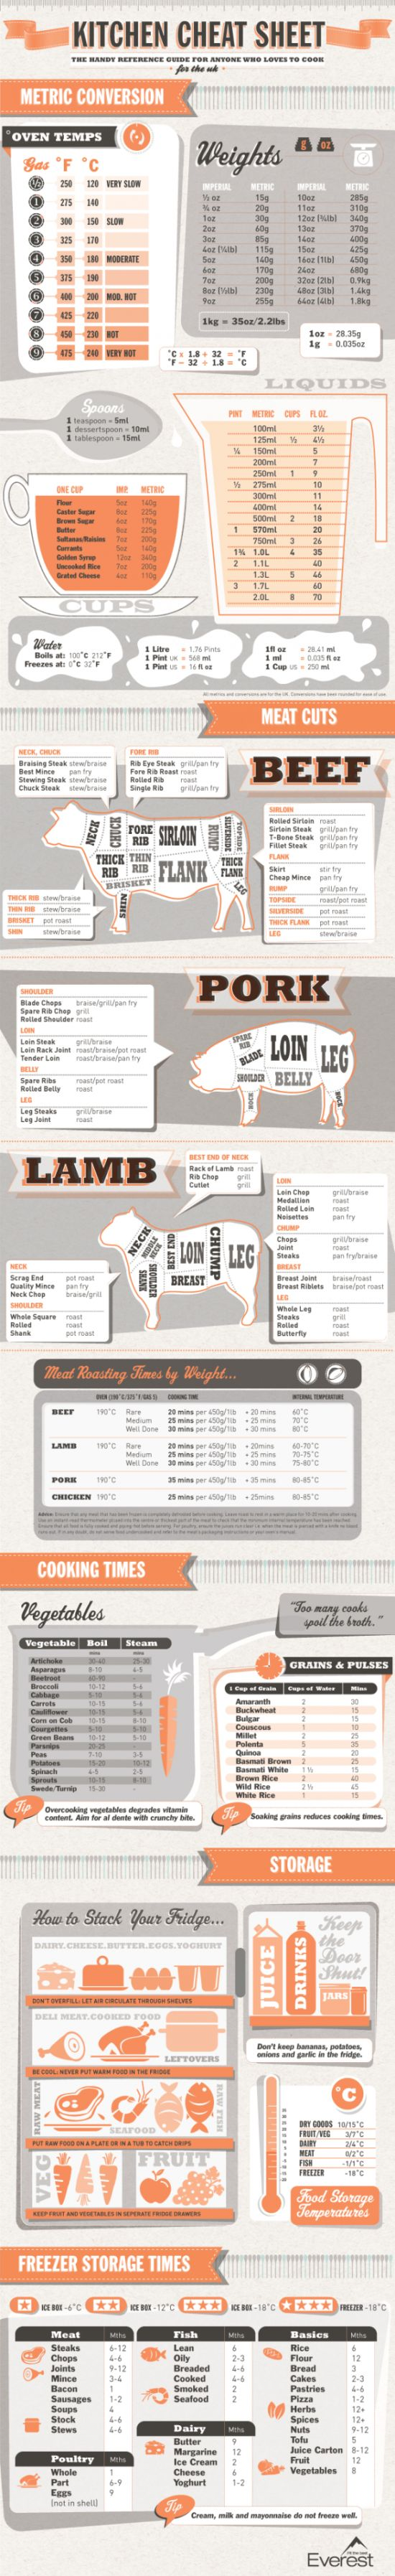 Kitchen Cheat Sheet - conversion charts, meat cuts and cooking time charts.